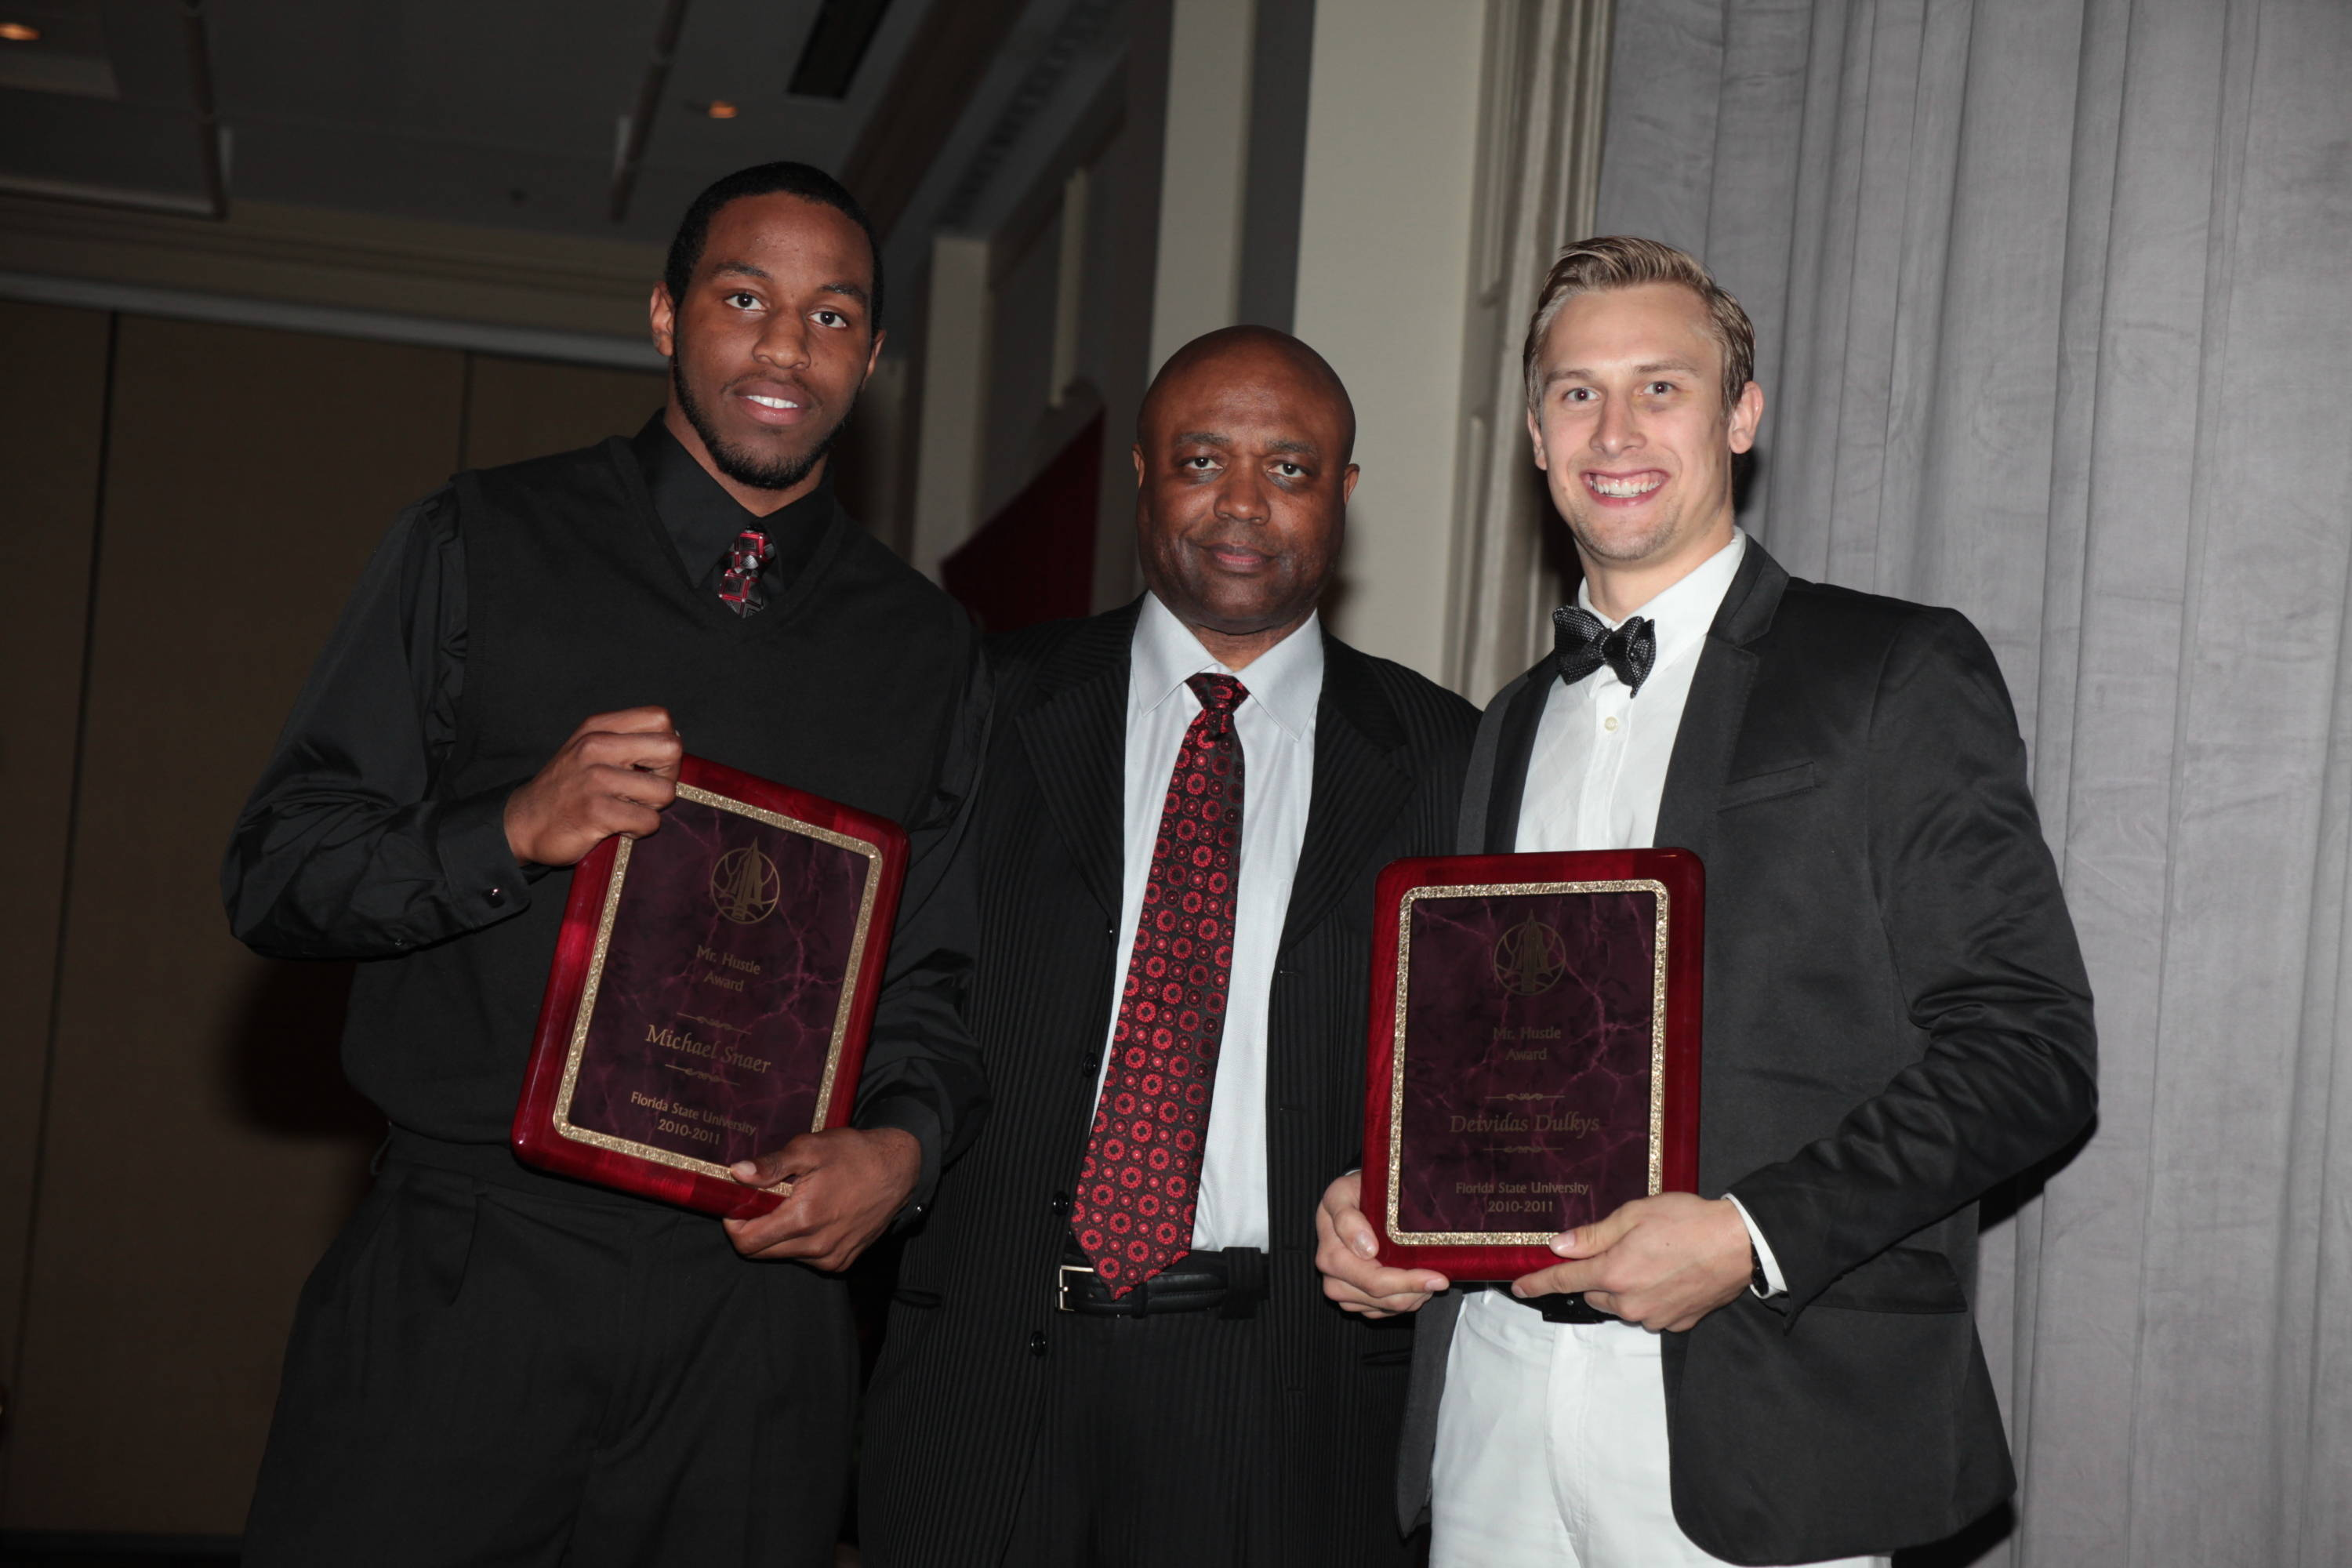 2011 Men's Basketball Banquet - Michael Snaer and Deividas Dulkys